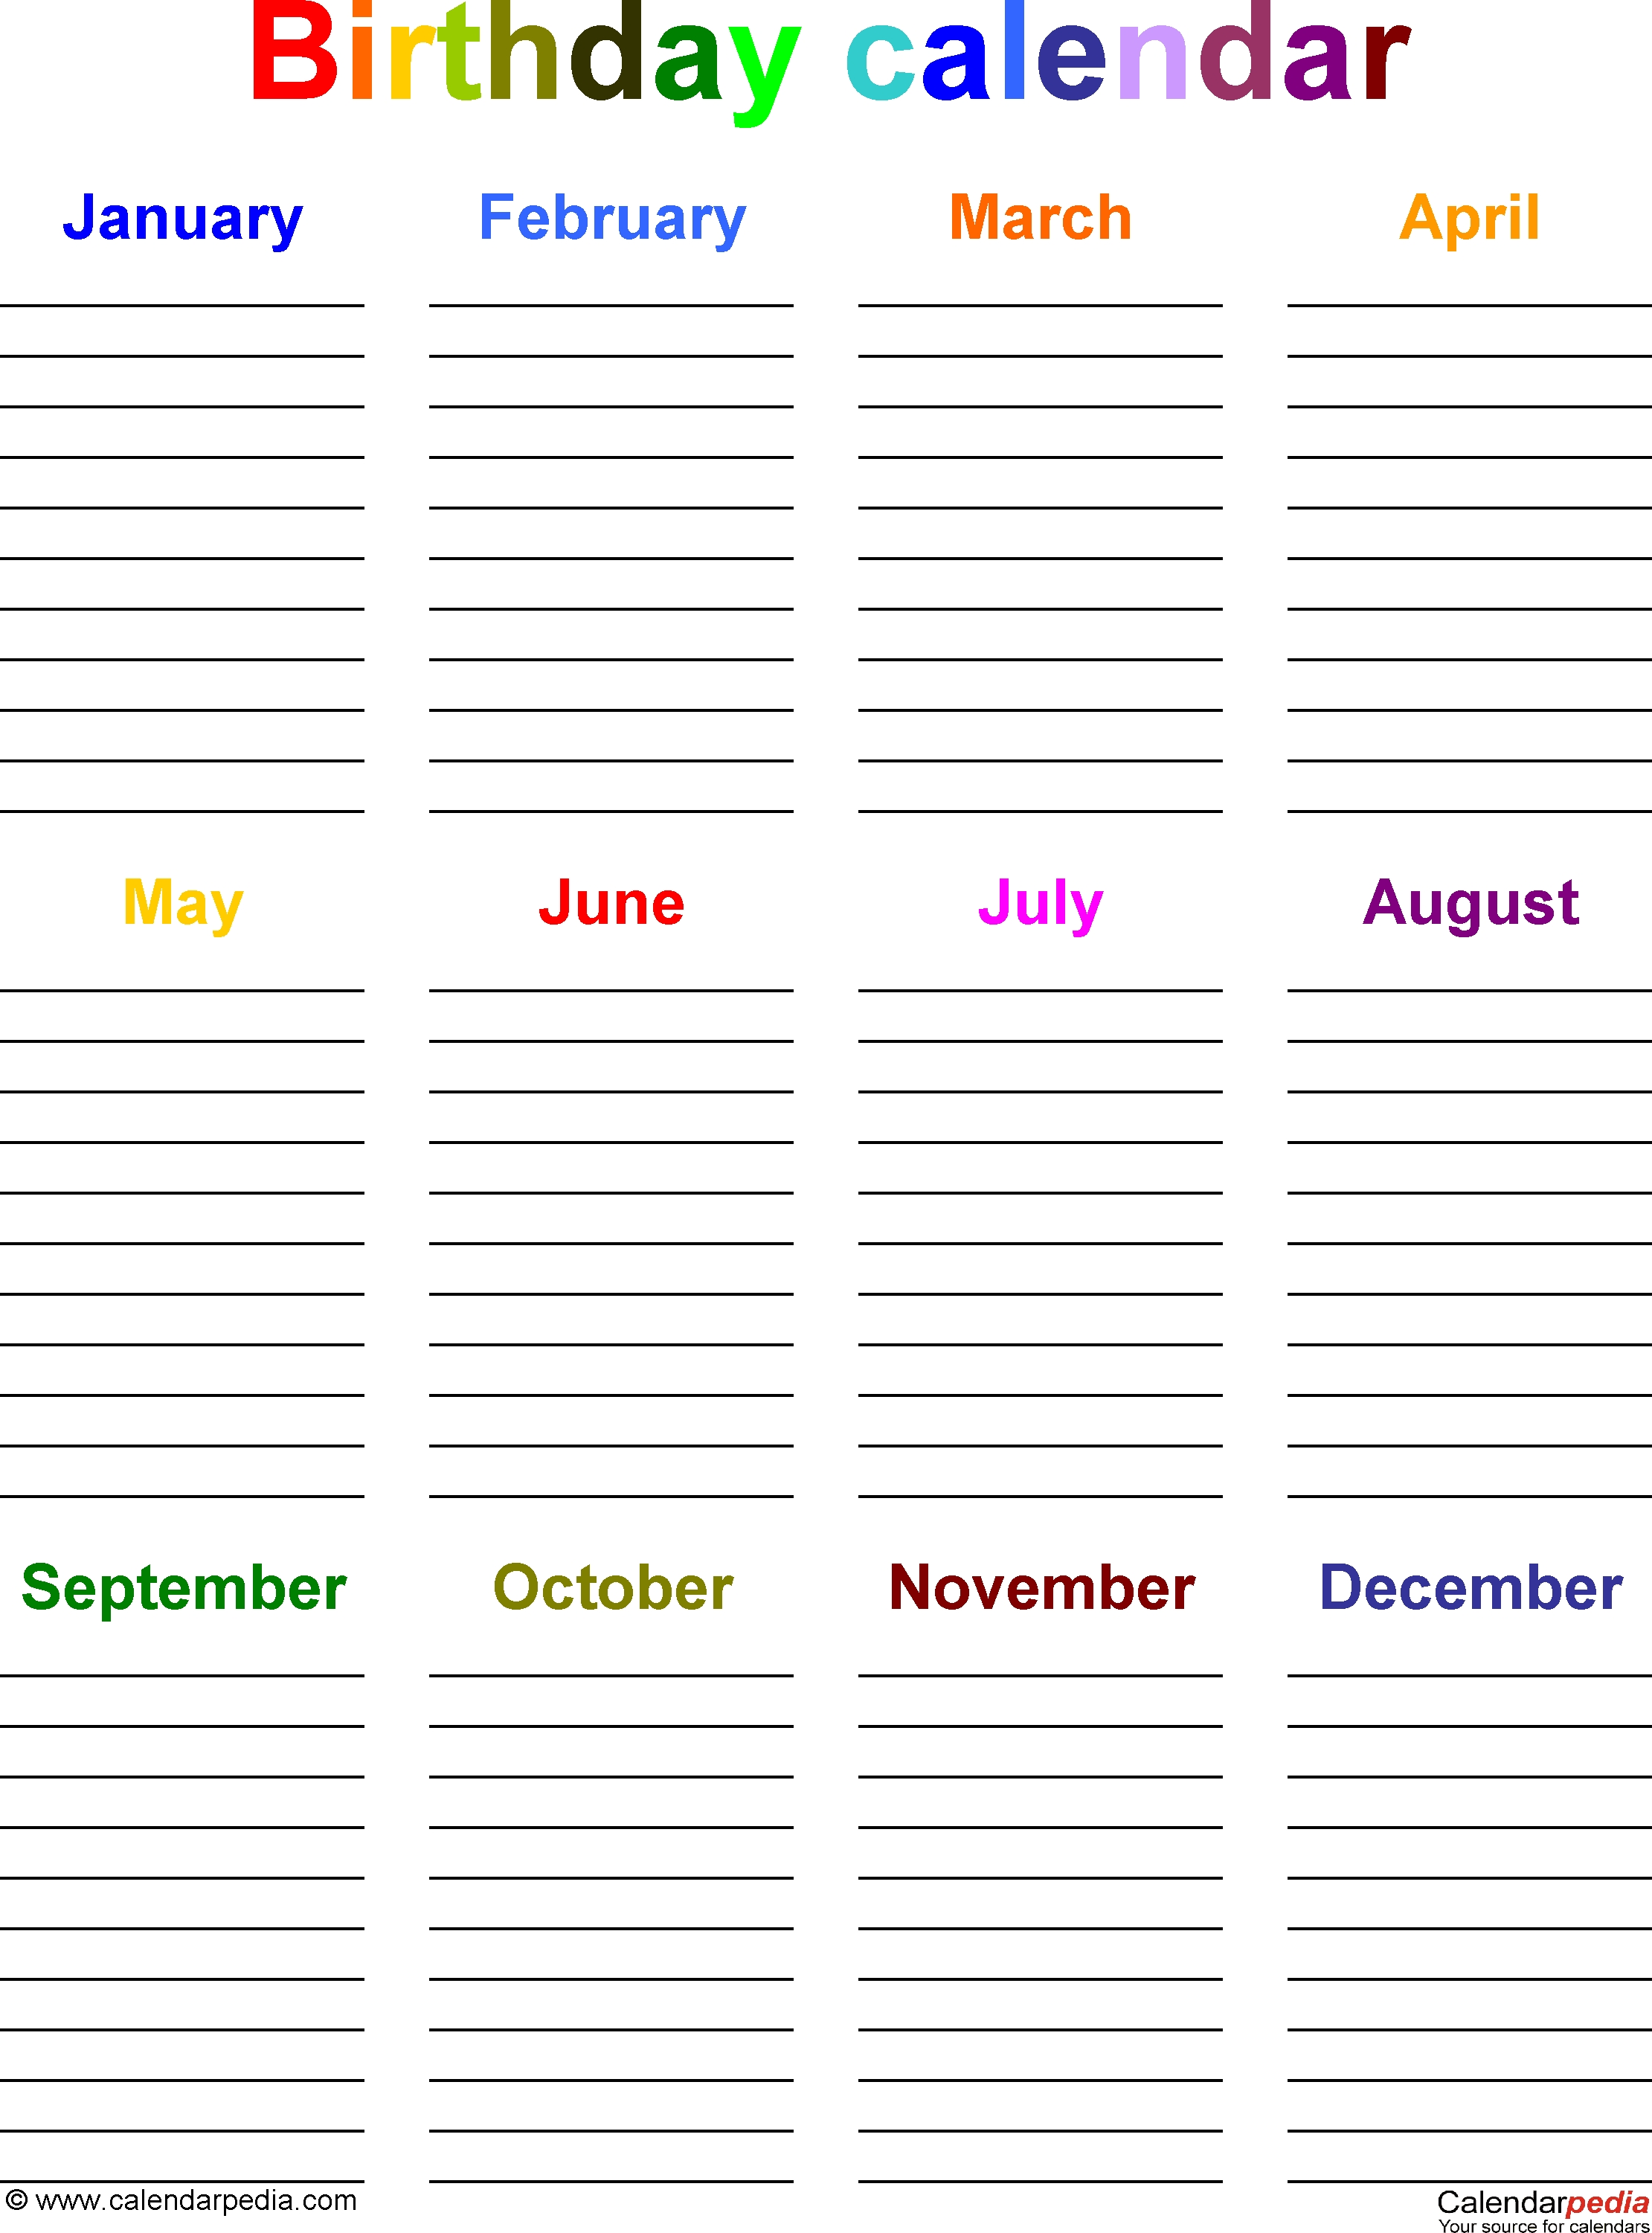 Birthday Calendars - 7 Free Printable Word Templates  12 Month Birthday Calendar Template